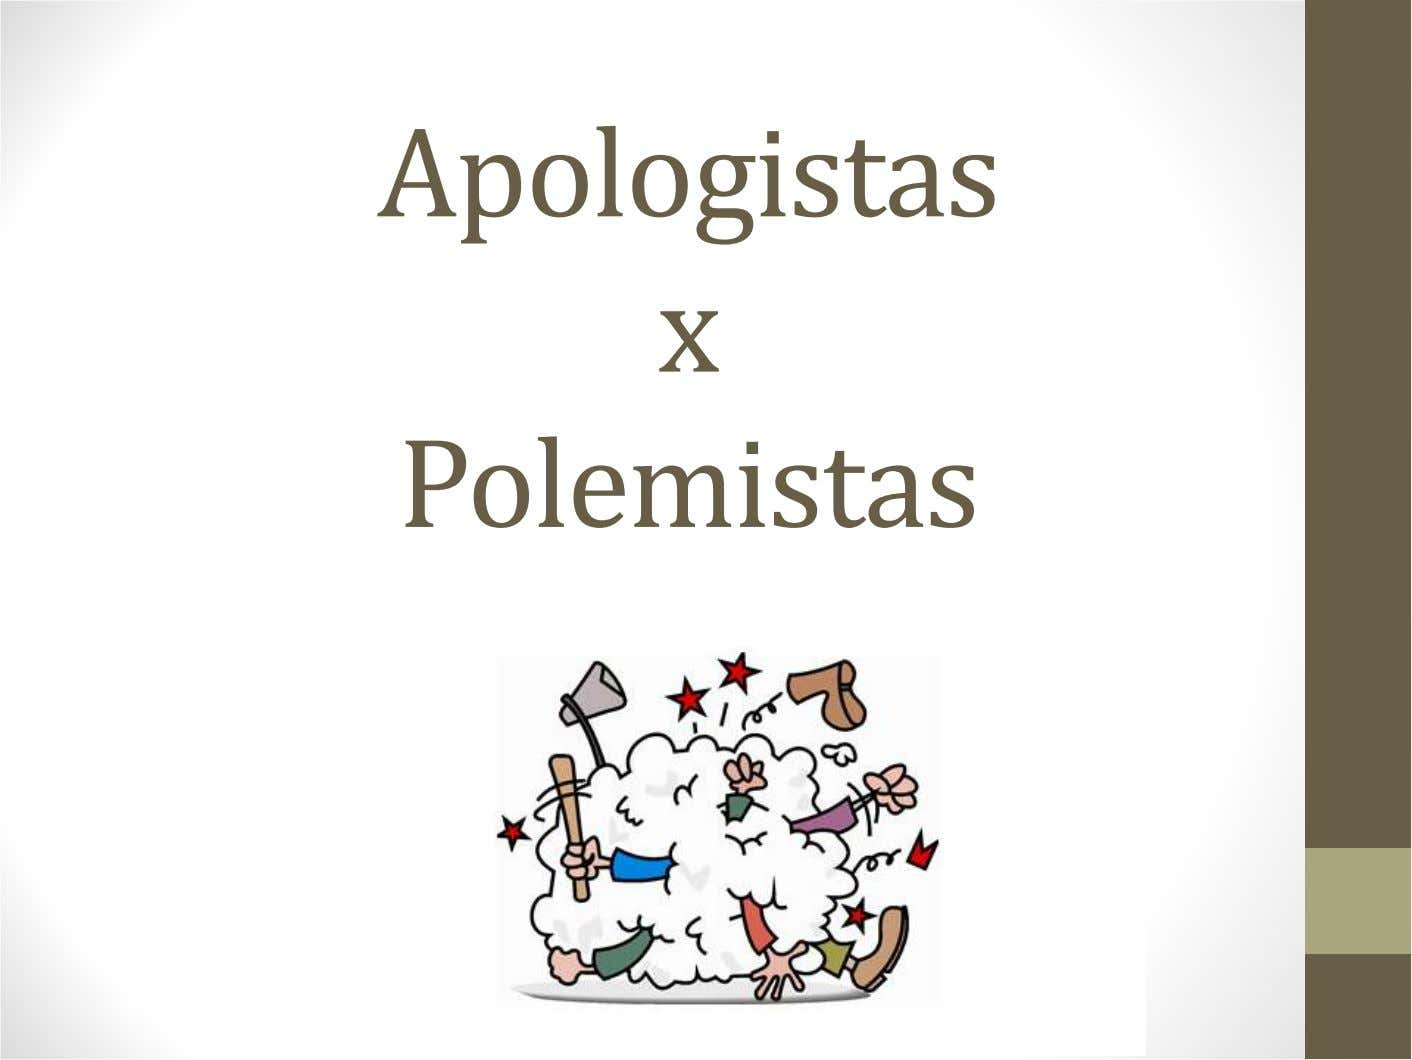 Apologistas x Polemistas